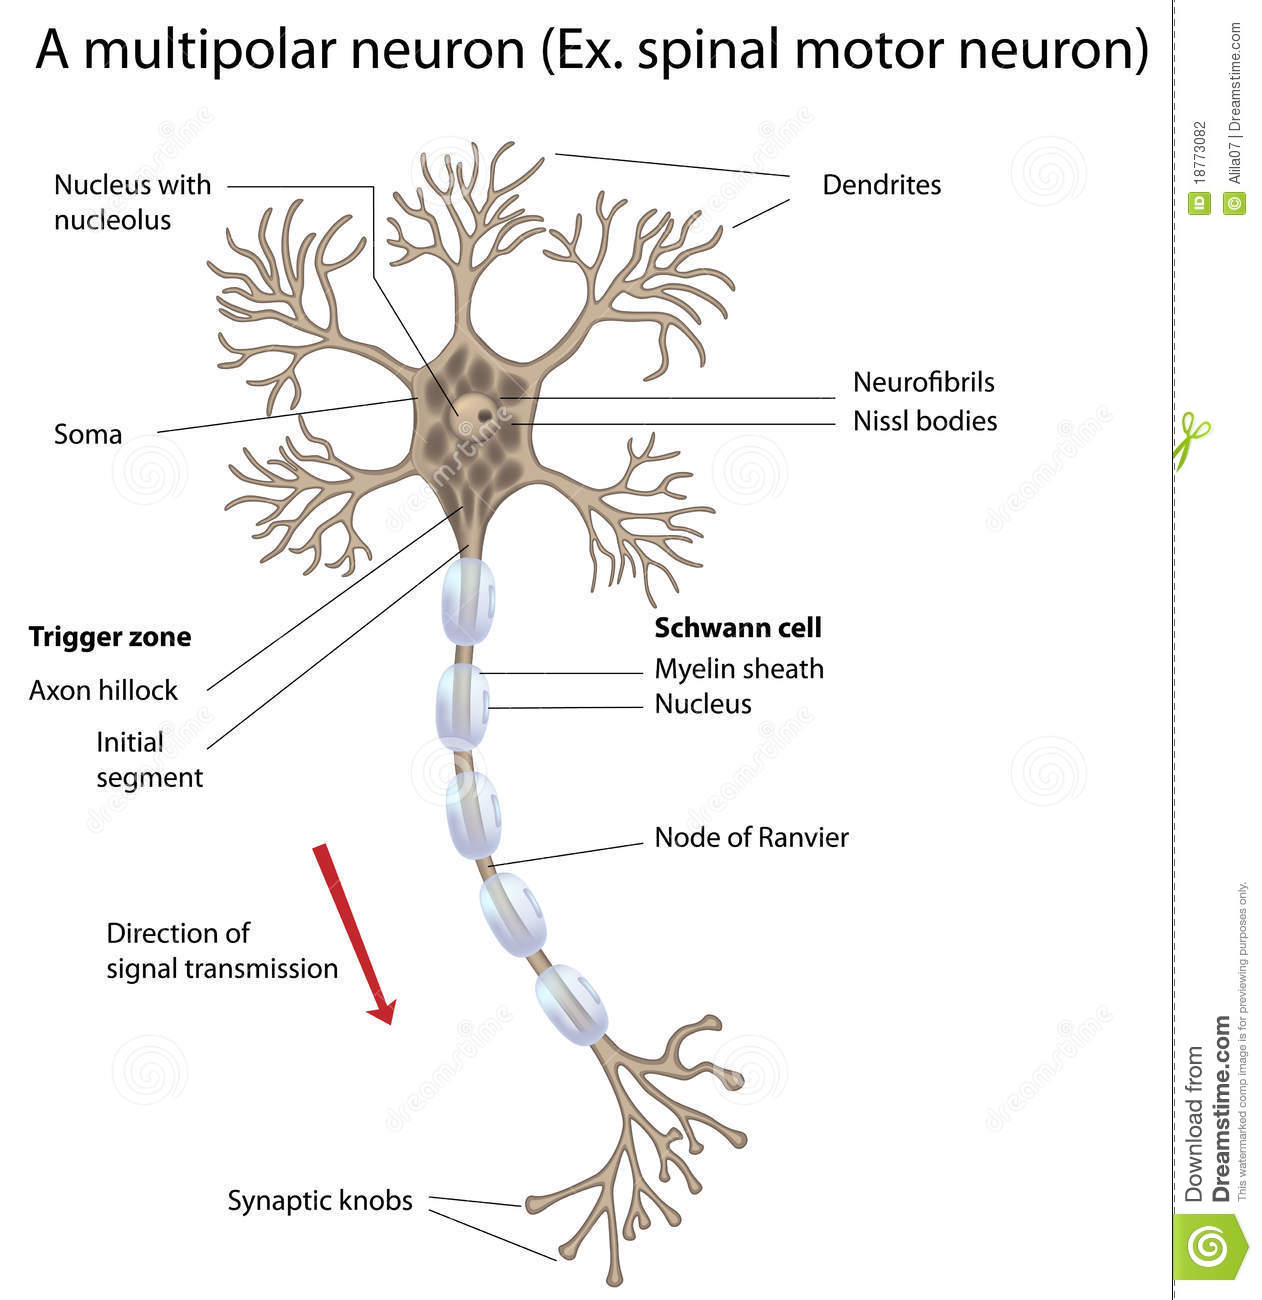 basic neuron diagram wiring mccb motorized schneider motor detailed and accurate labeled vers stock